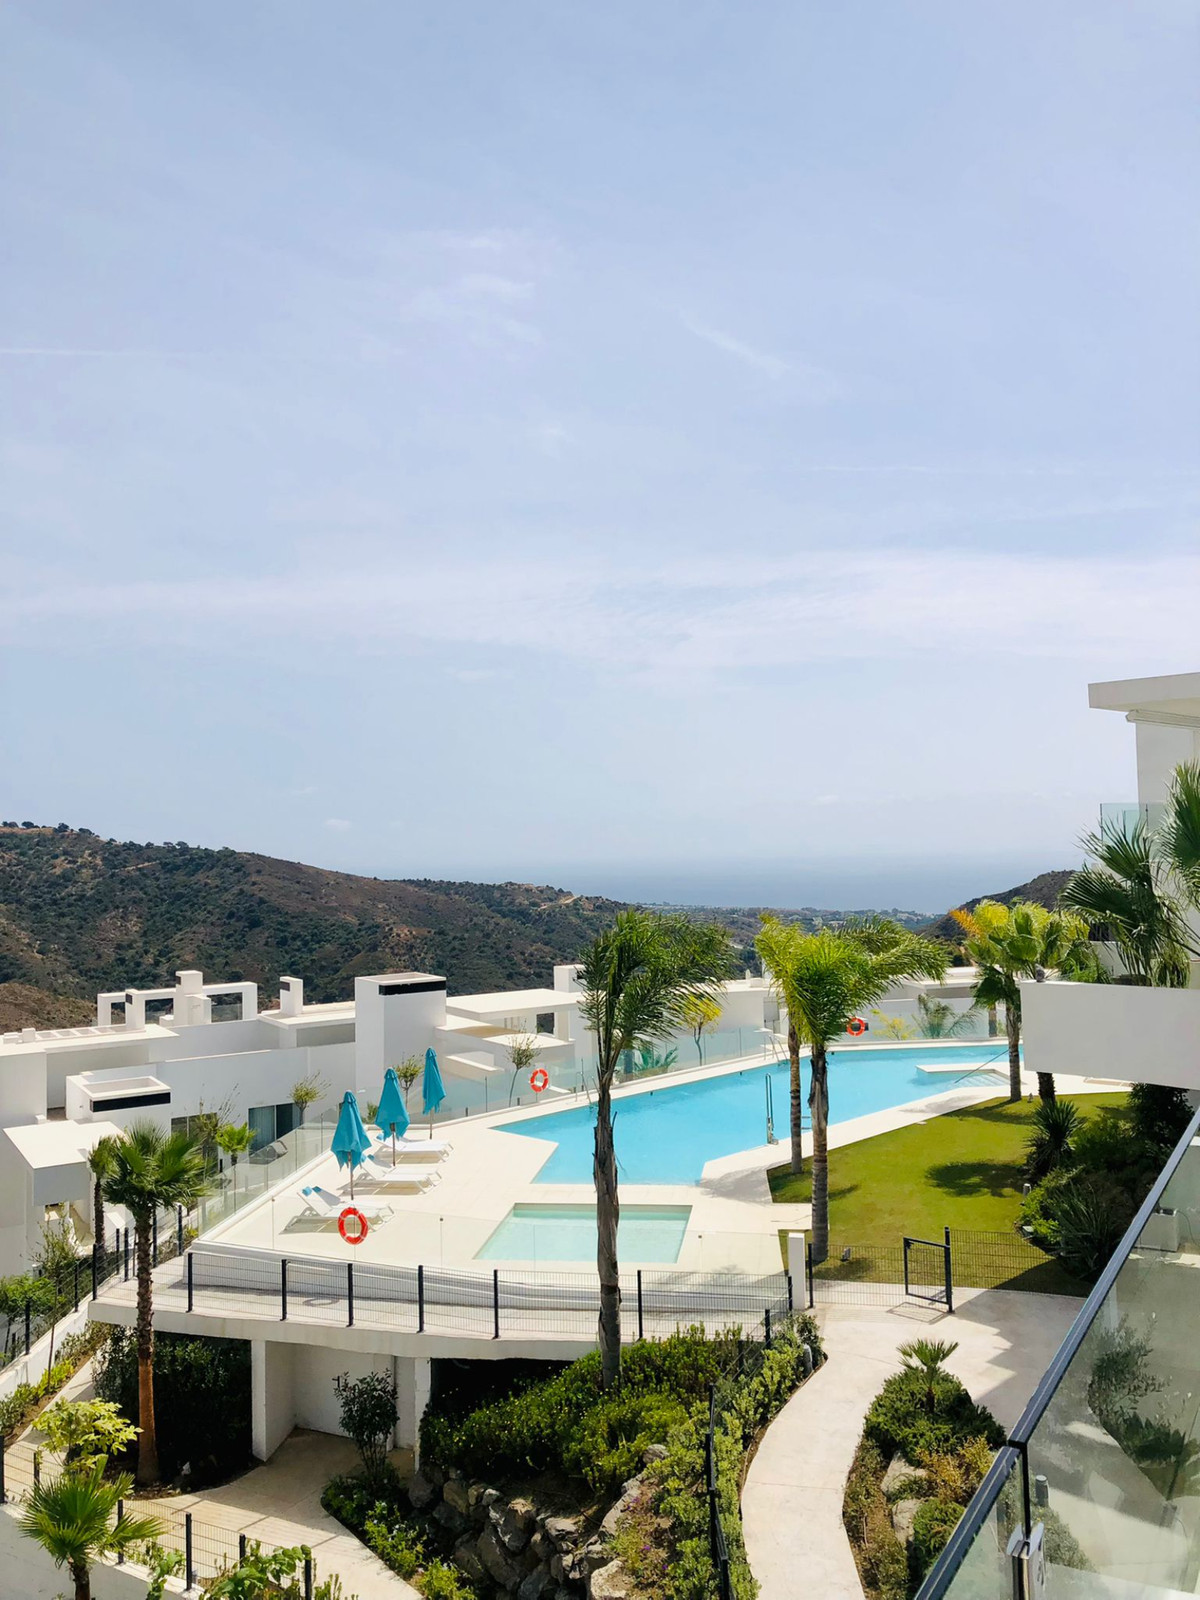 Fully furnished LUXURY apartment, ready to move in Palo Alto, Marbella, . This 2-bedroom apartment i,Spain